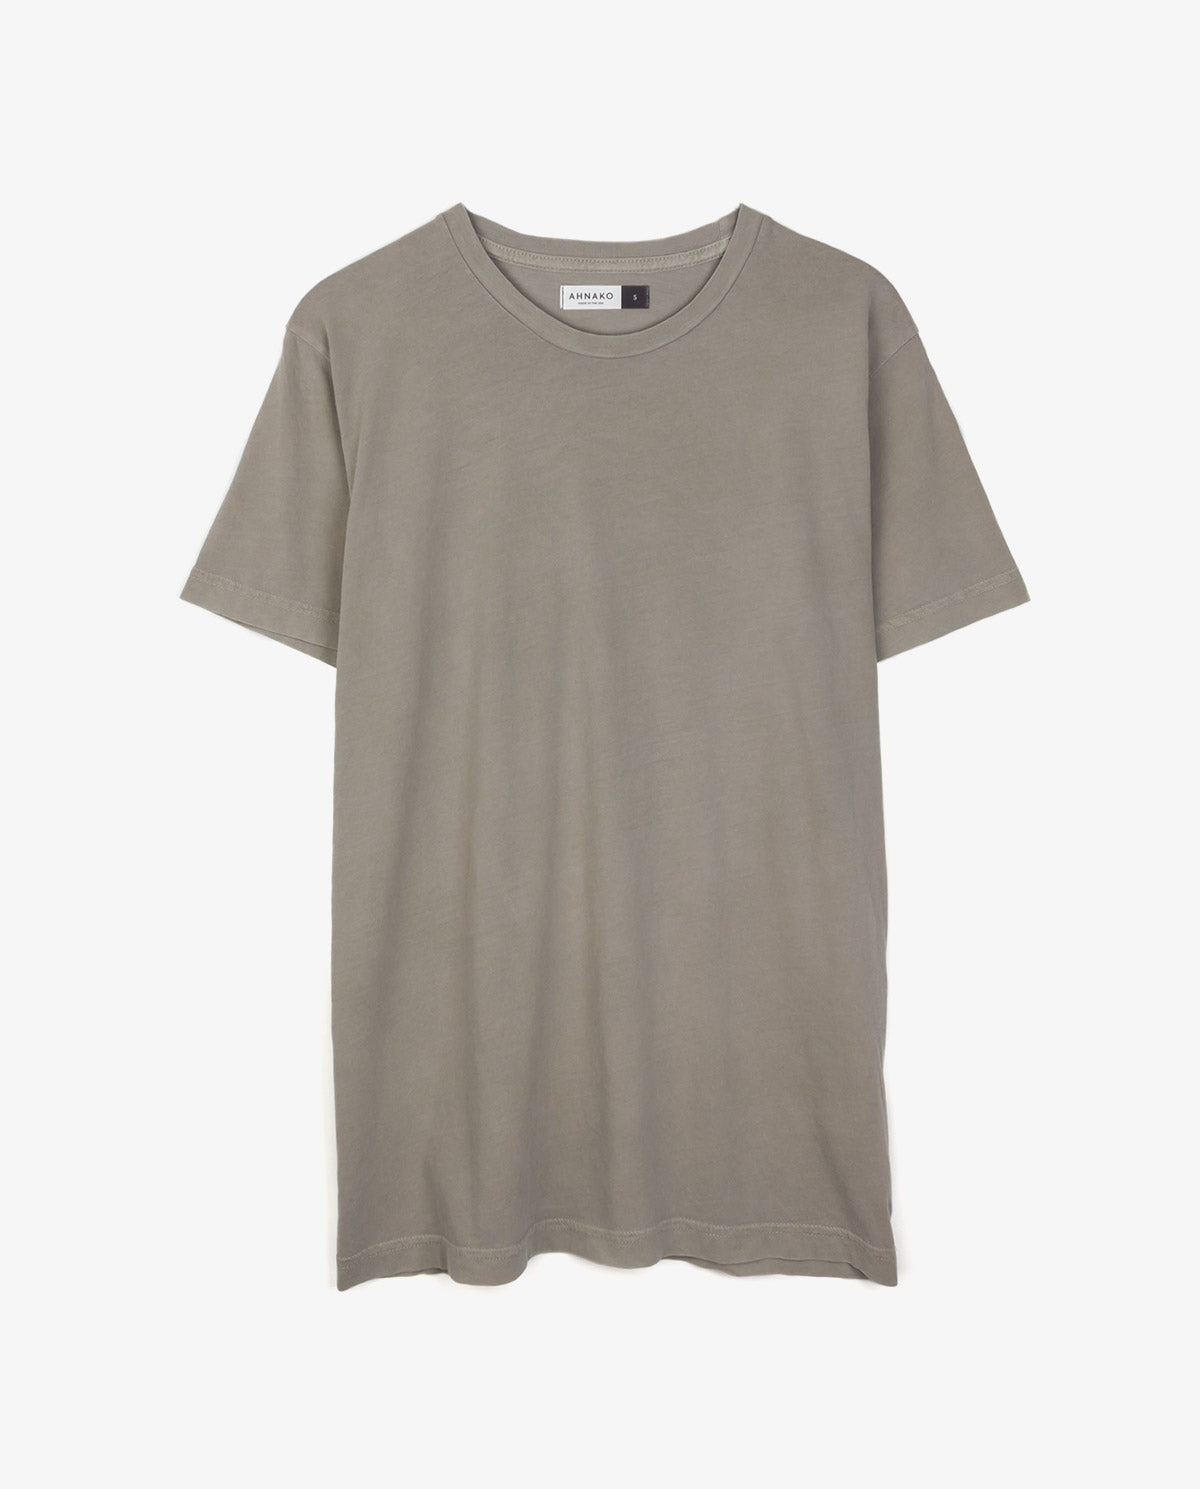 Ahnako Basic Tee Shirt - Suva Grey